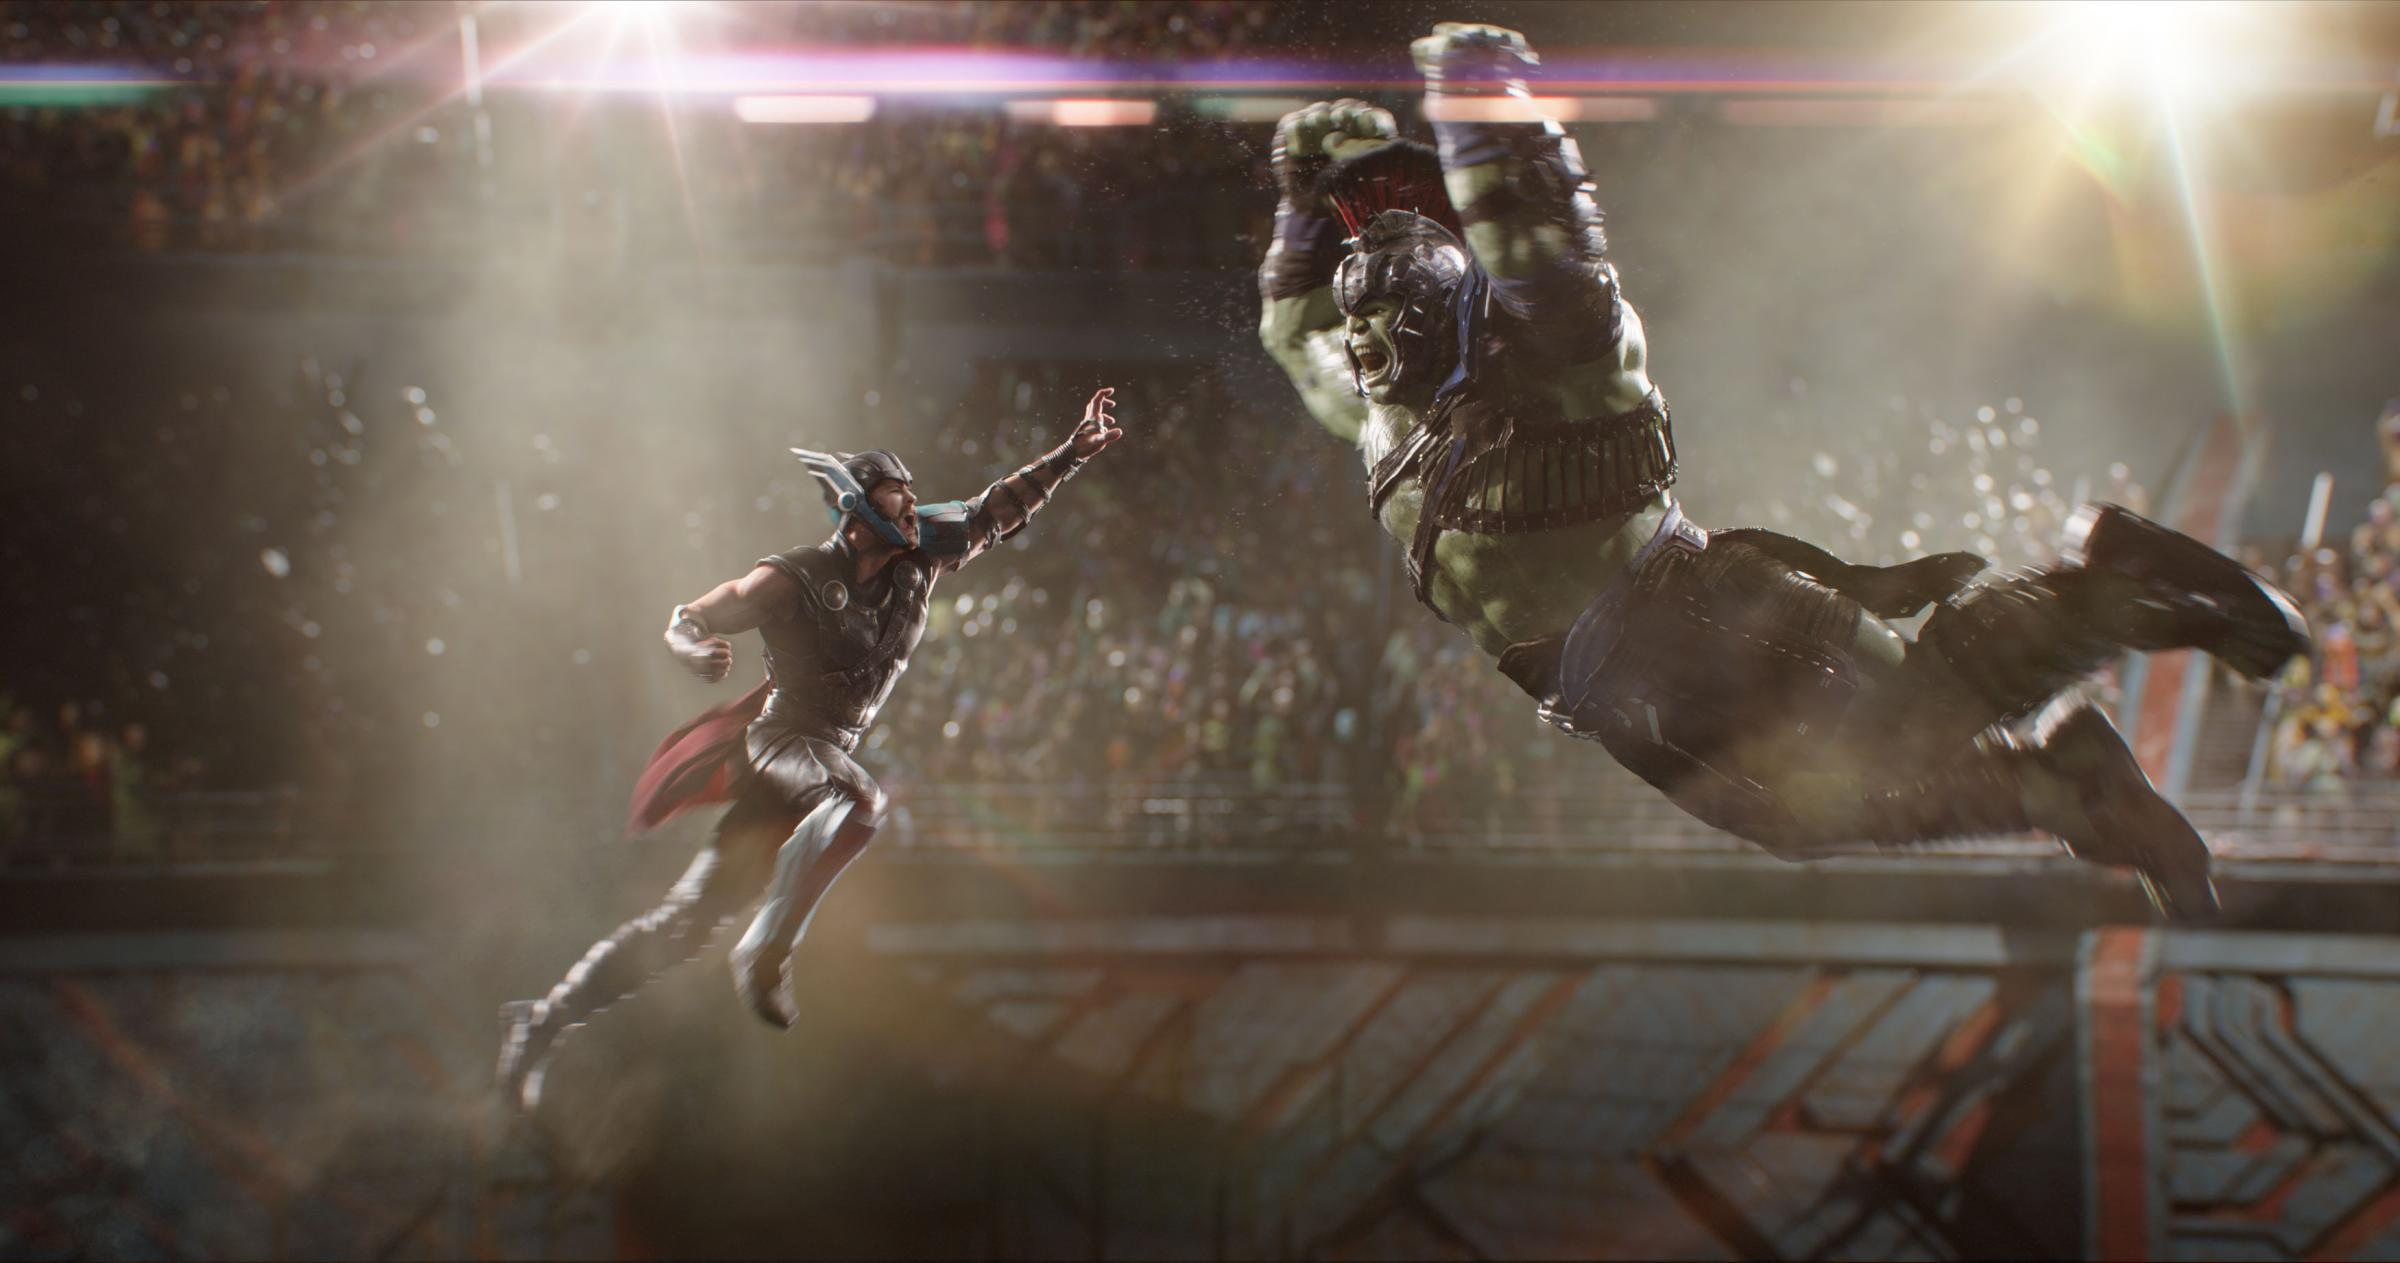 Thor squares off against 'a friend from work'